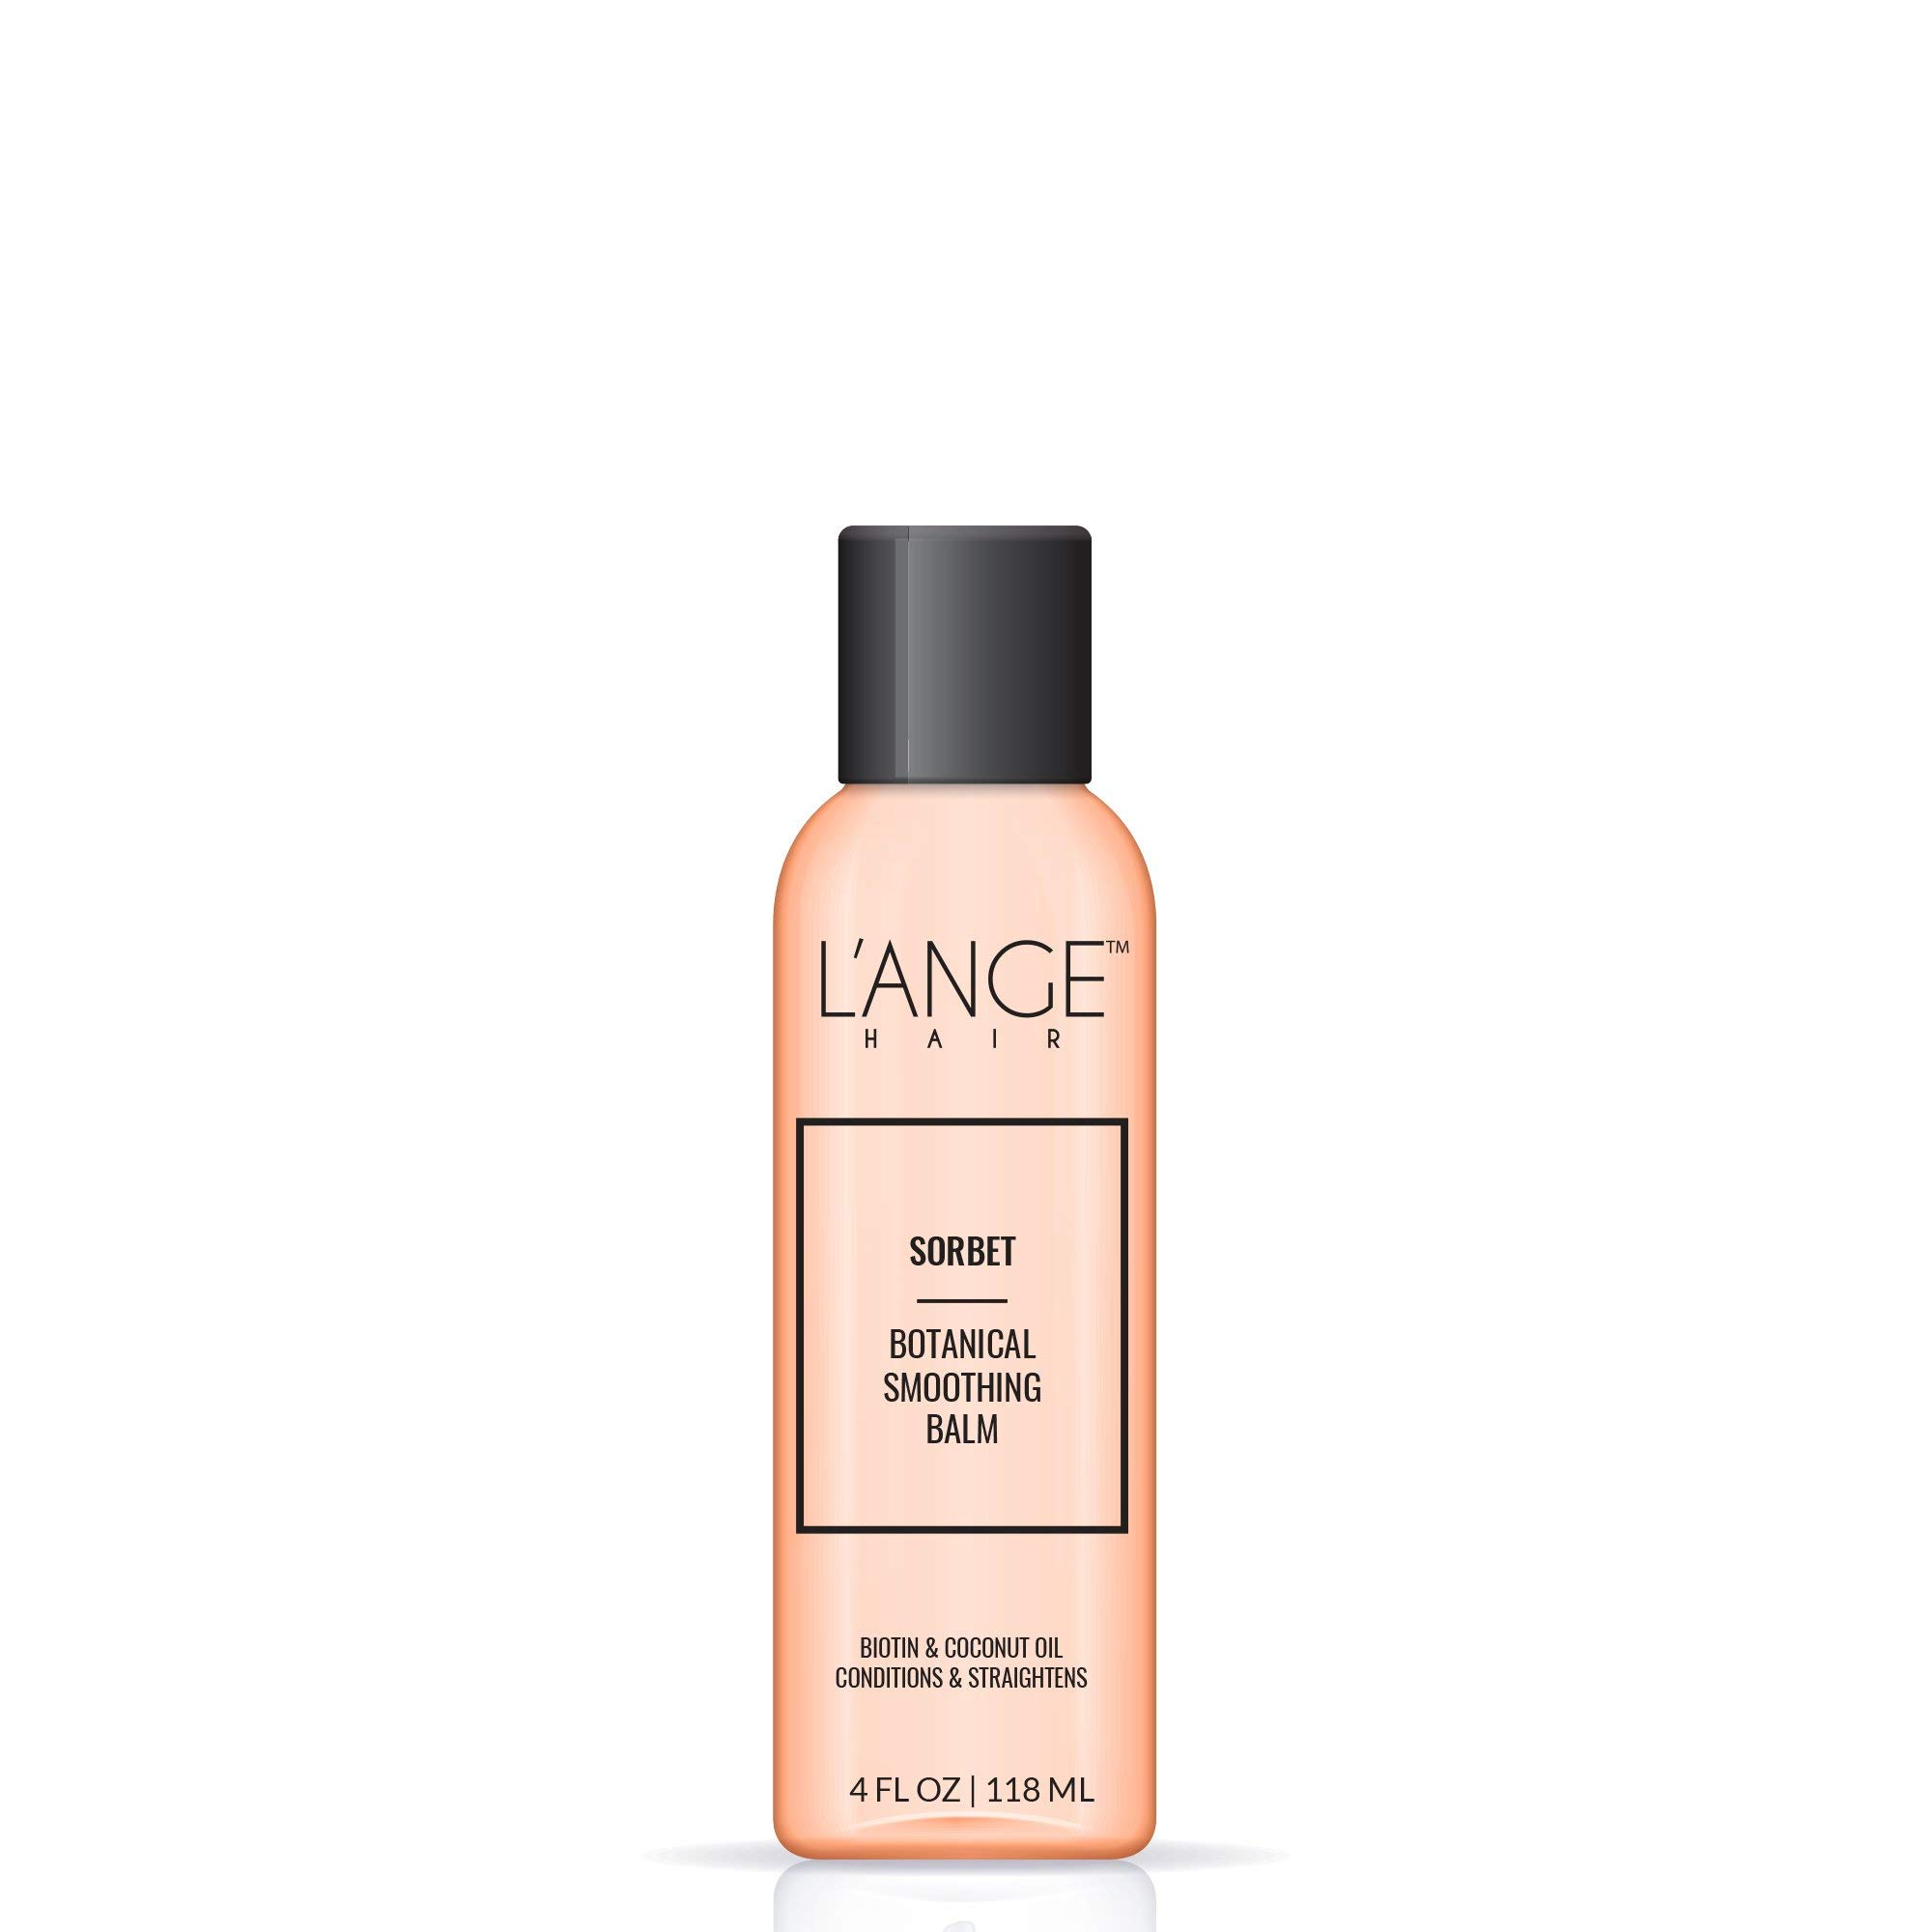 L'ANGE SORBET Botanical Smoothing Balm - Biotin & Coconut Oil - Paraben Free UV Protectant - Deep Conditioning Treatment - Natural Looking Hair Result - Salon Grade Hair Care, 4 FL Oz